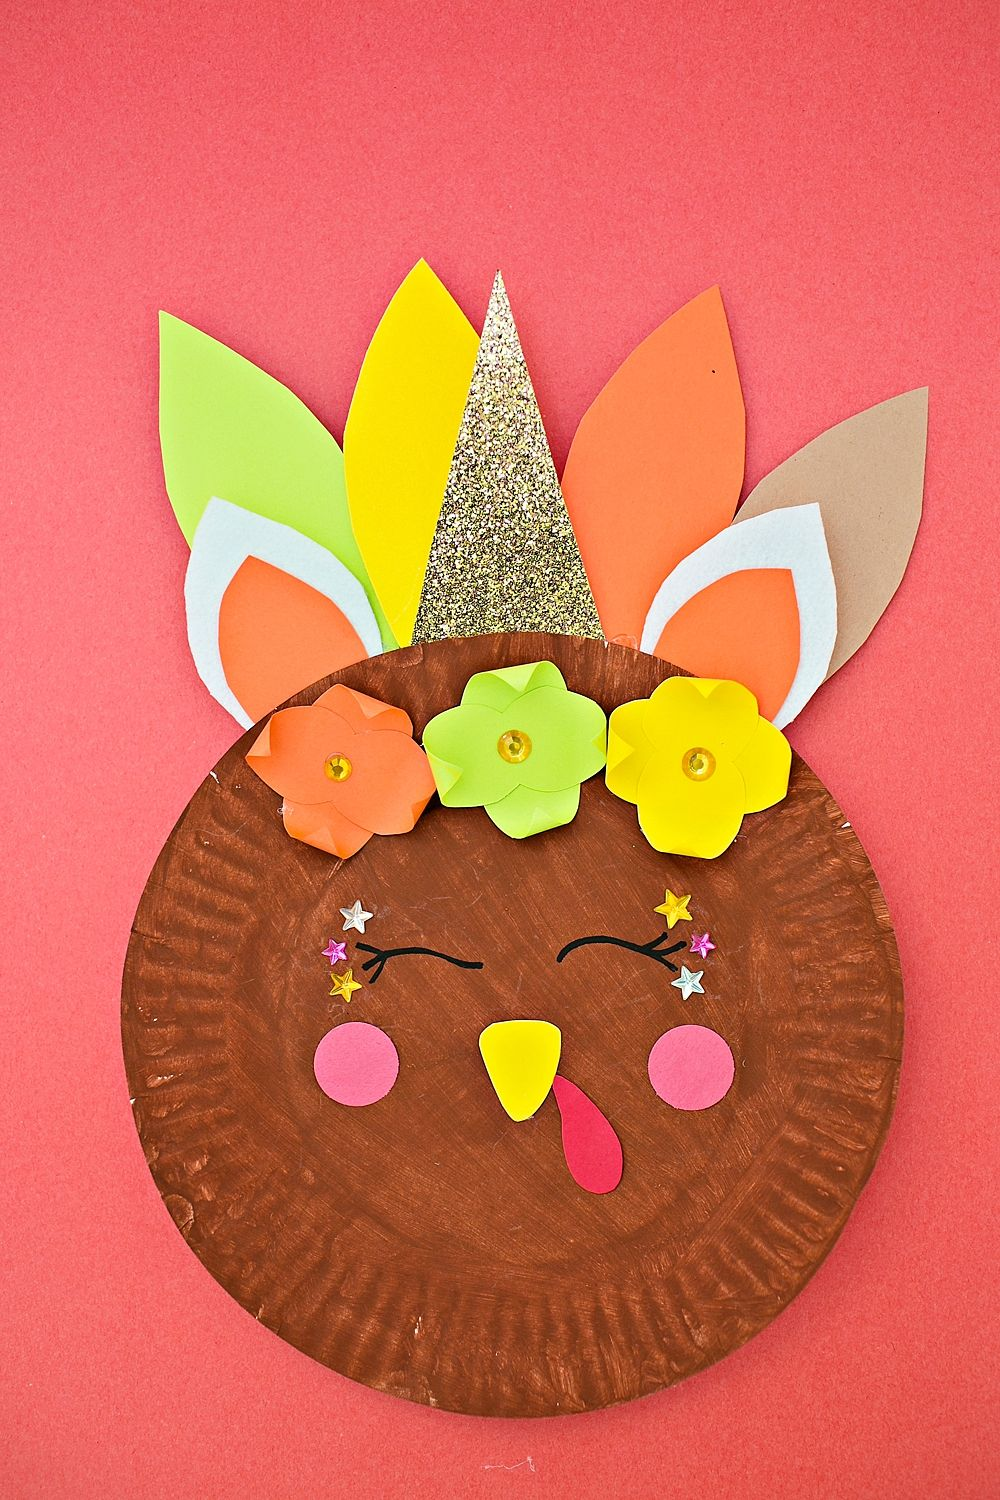 Unicorn Turkey Craft Paper Plate Kidscrafts Kidsart Paperplatecrafts Turkeycraft